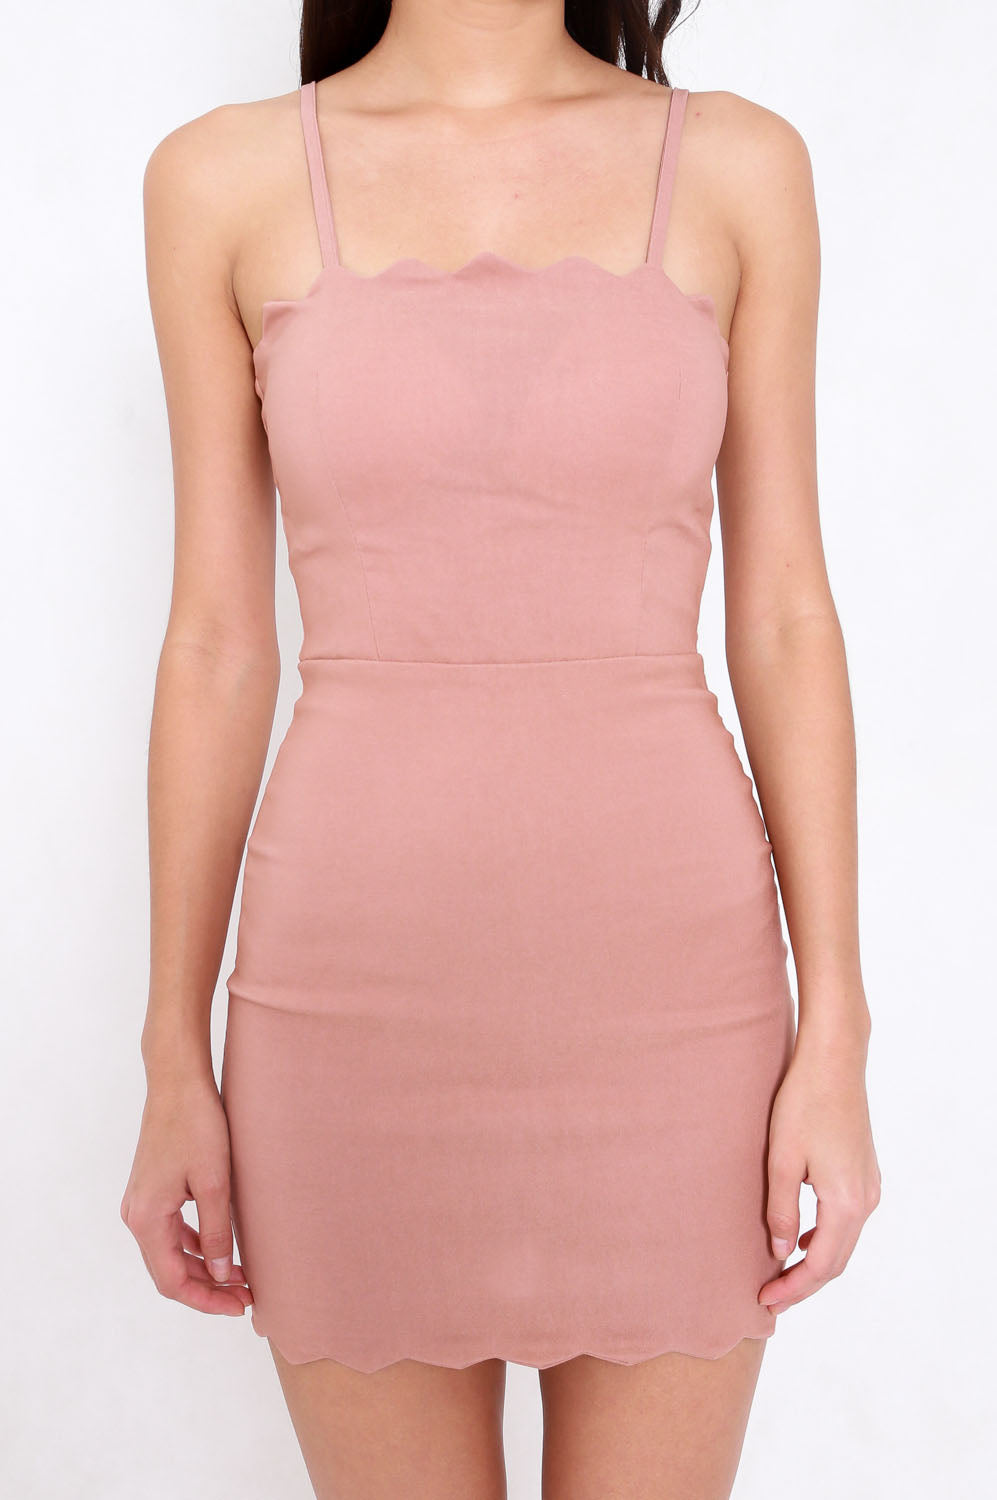 Scallop Spag Dress (Tan-Nude)